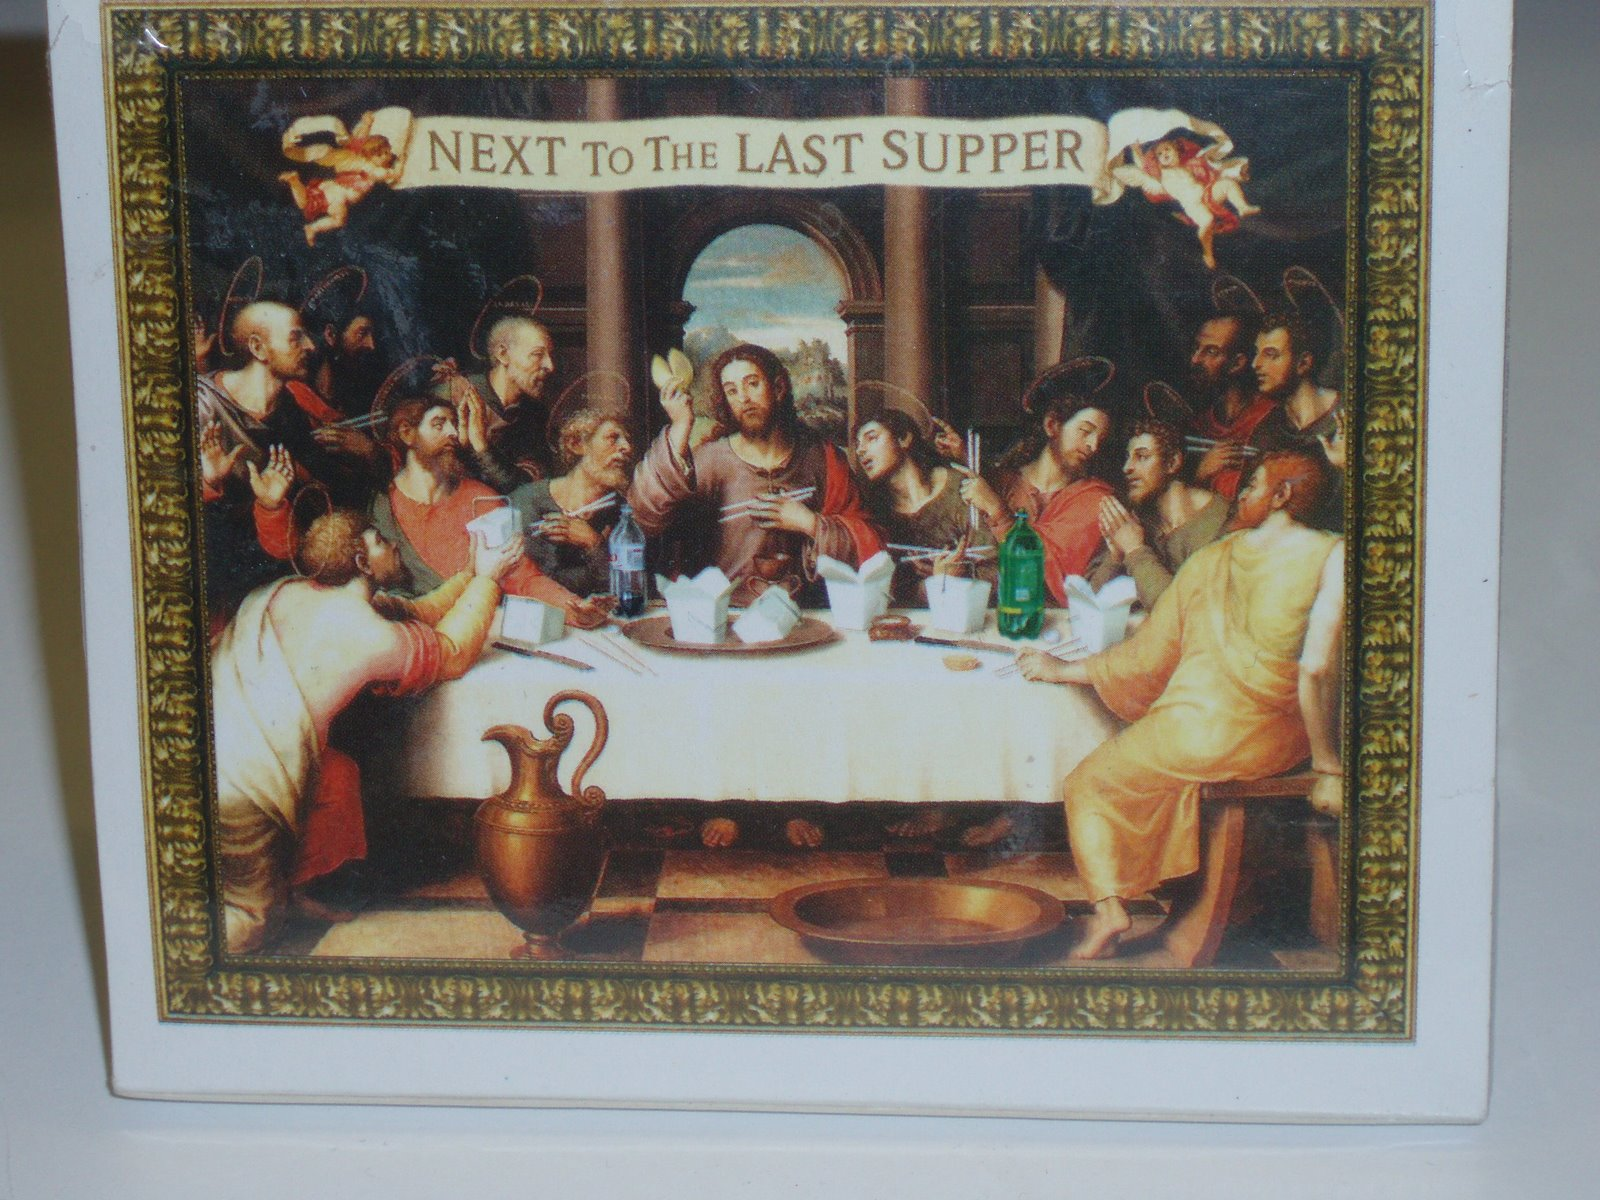 jesus and Chinese food, the next to last supper